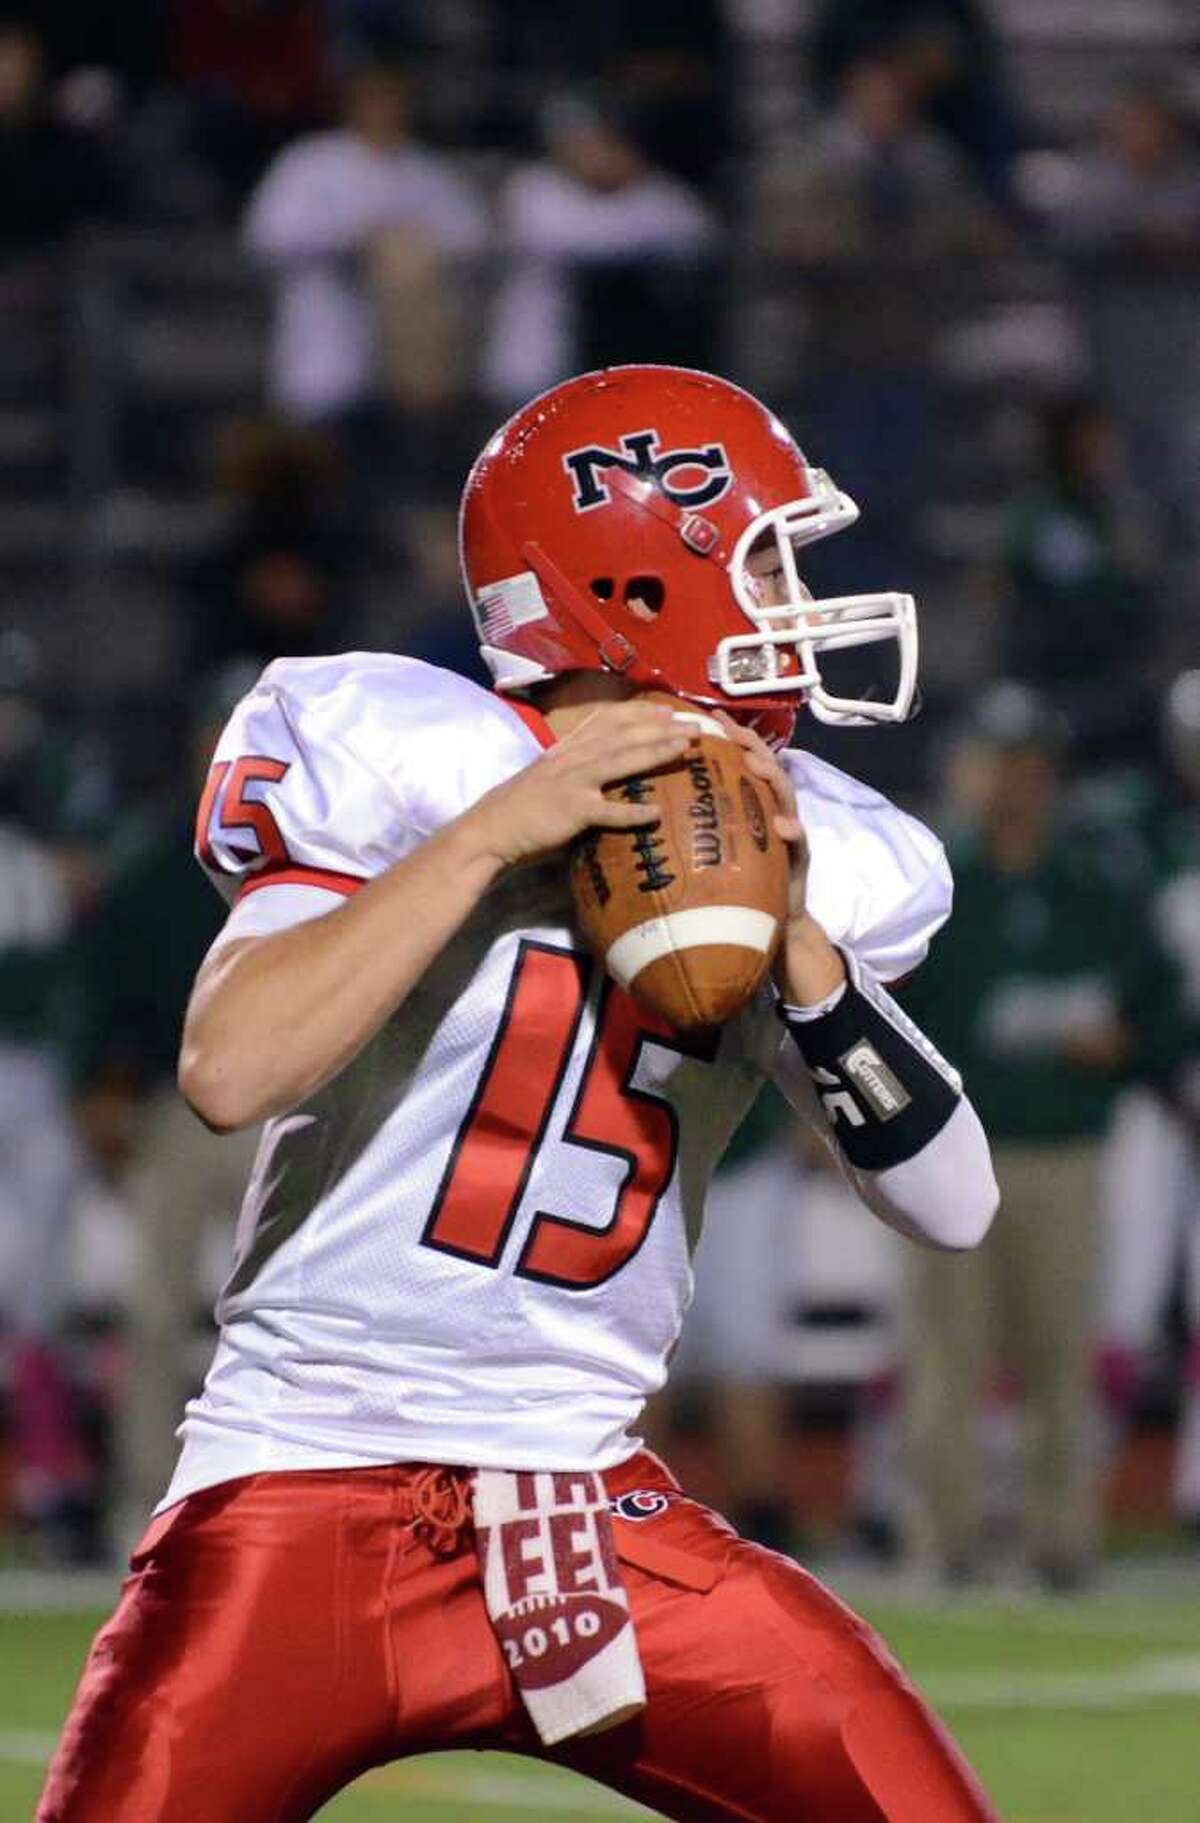 New Canaan's quarterback Matt Milano (15) prepares to throw a pass during the football game against Norwalk at Norwalk High School on Friday, Oct. 14, 2011.